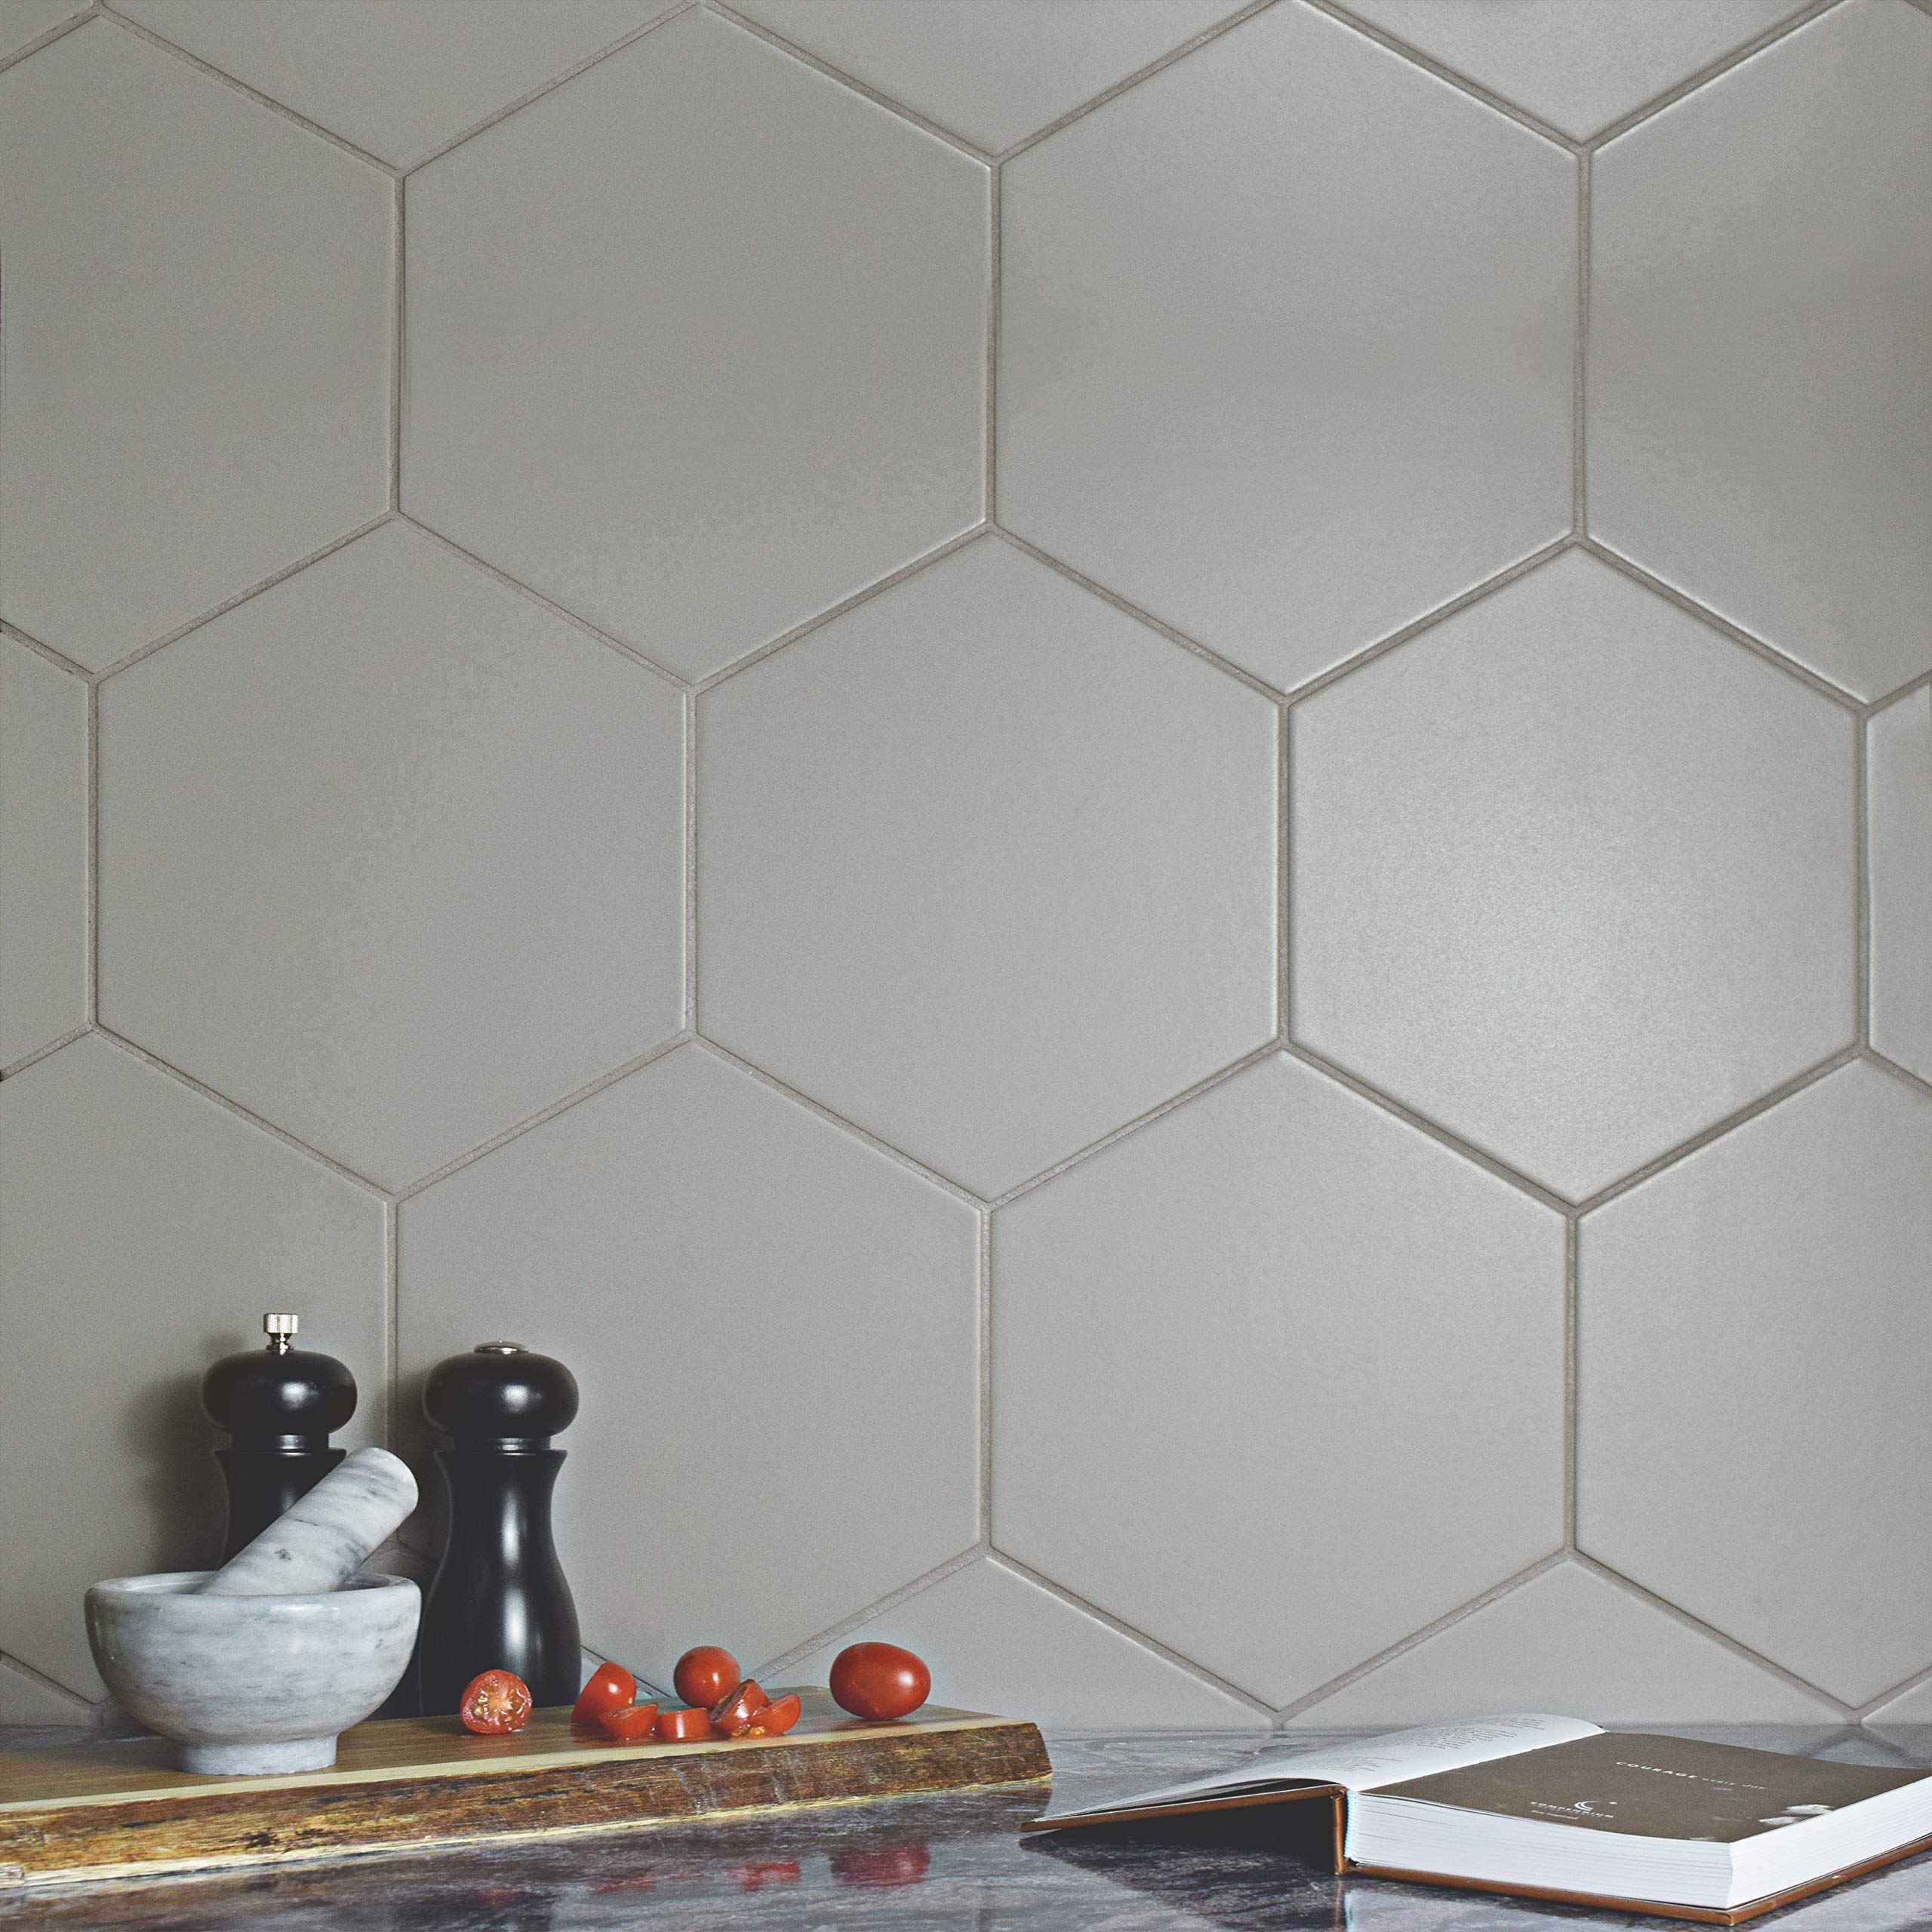 SomerTile FCD10STX Abrique Hex Porcelain Floor and Wall, 8.63'' x 9.88'', Silver Tile 8.625'' x 9.875'' 25 Piece by SOMERTILE (Image #8)